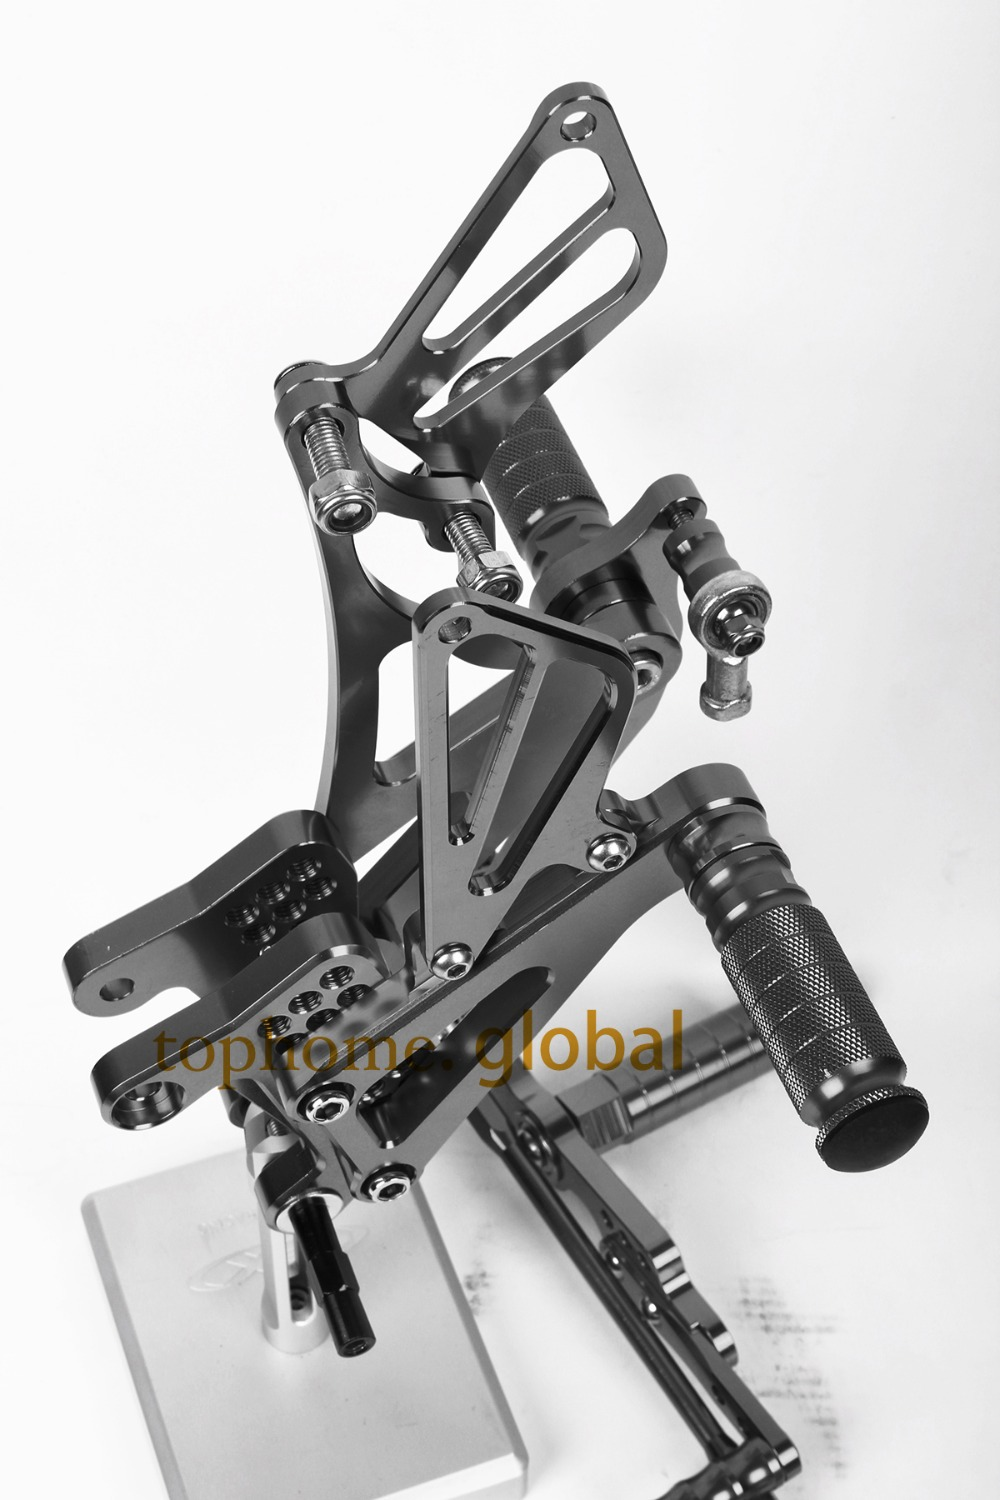 Motorcycle Dark Grey CNC Rearsets Foot Pegs Rear Set For Yamaha YZF R1 2007-2008 motorcycle foot pegs free shipping motorcycle parts silver cnc rearsets foot pegs rear set for yamaha yzf r6 2006 2010 2007 2008 motorcycle foot pegs